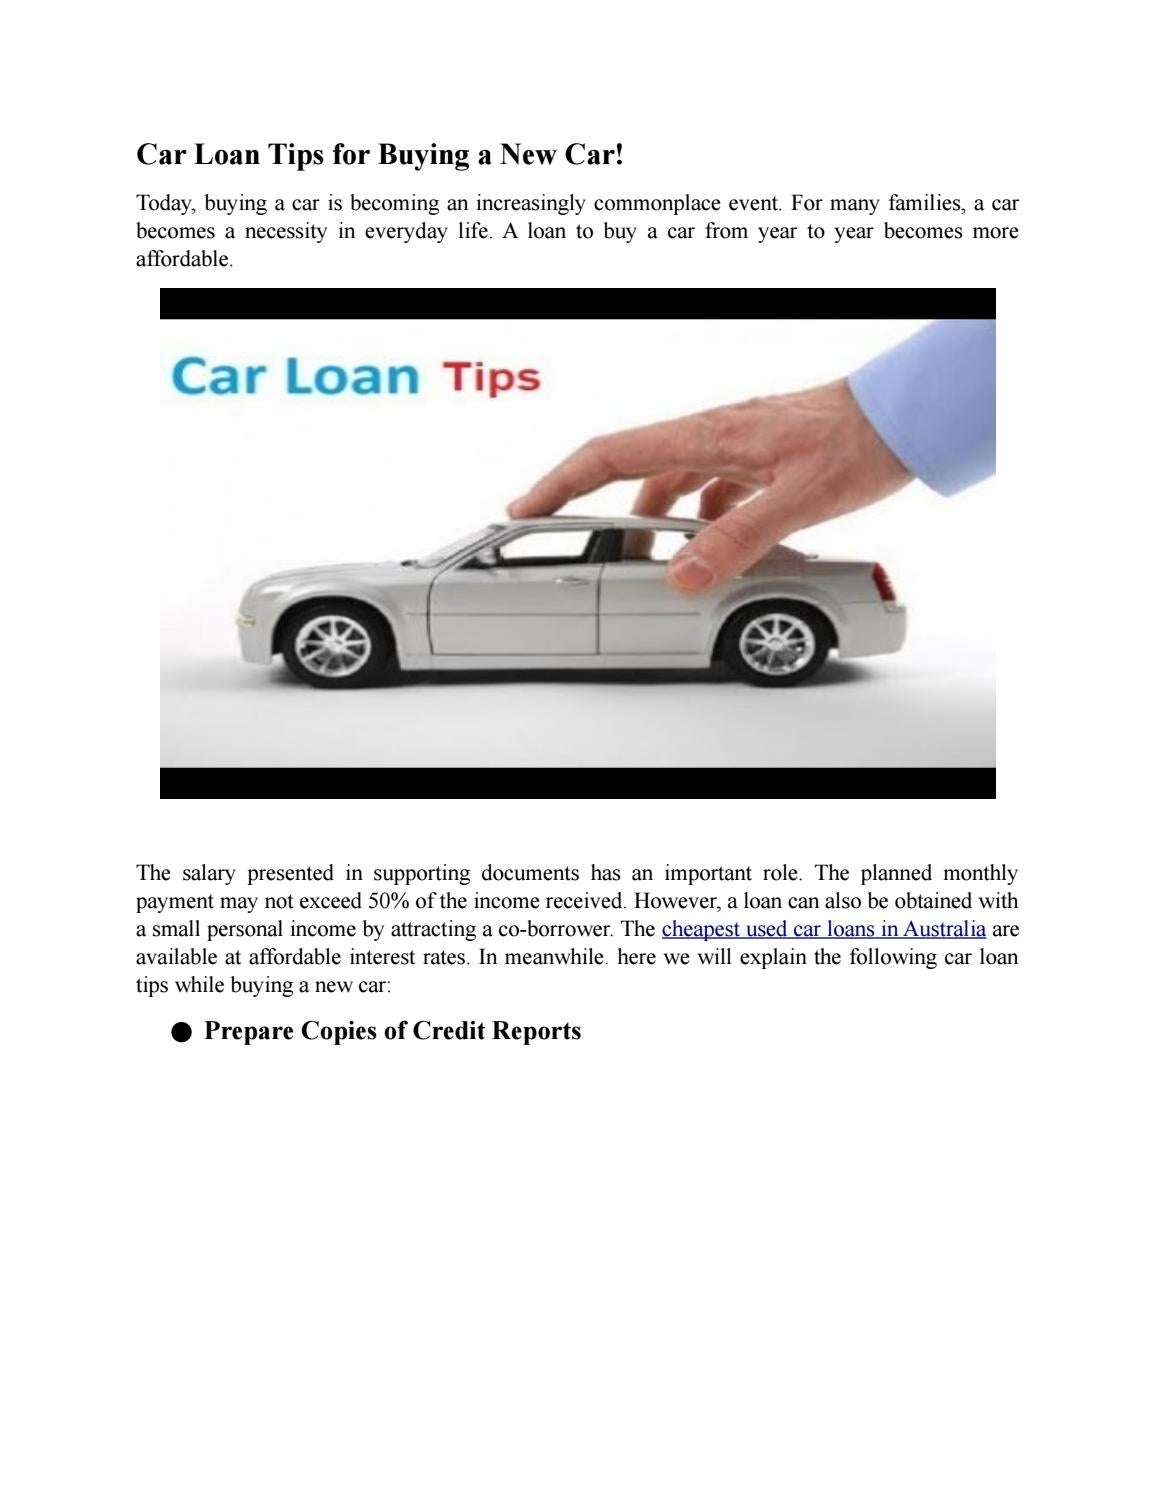 Used Car Loan >> Cheapest Used Car Loans Tips Buying A Car By Aussie Express